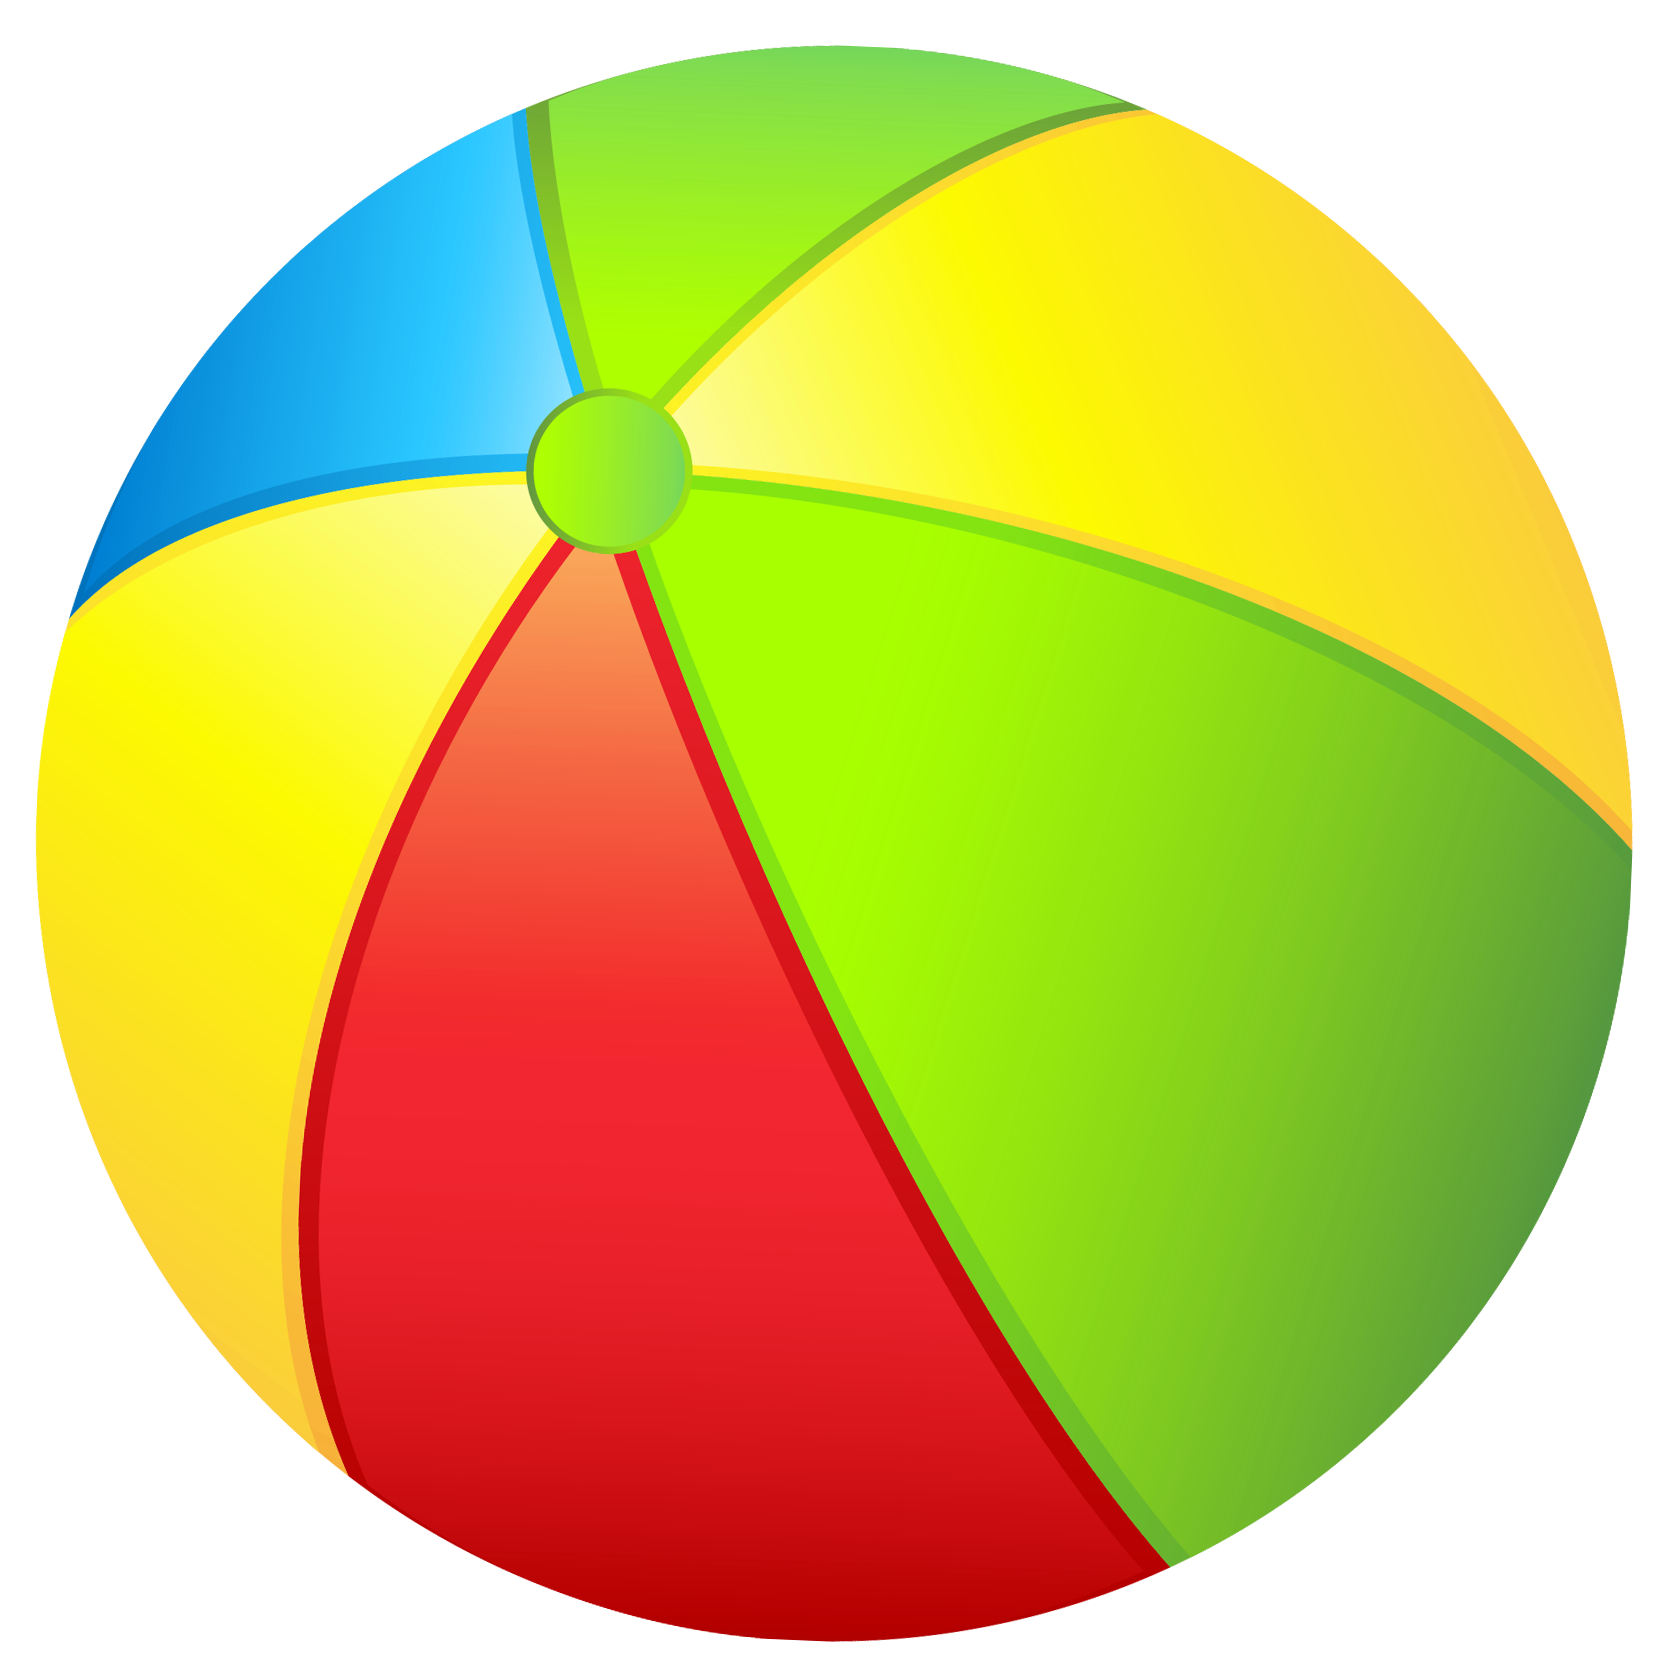 Picture clipart ball. Free cliparts download clip